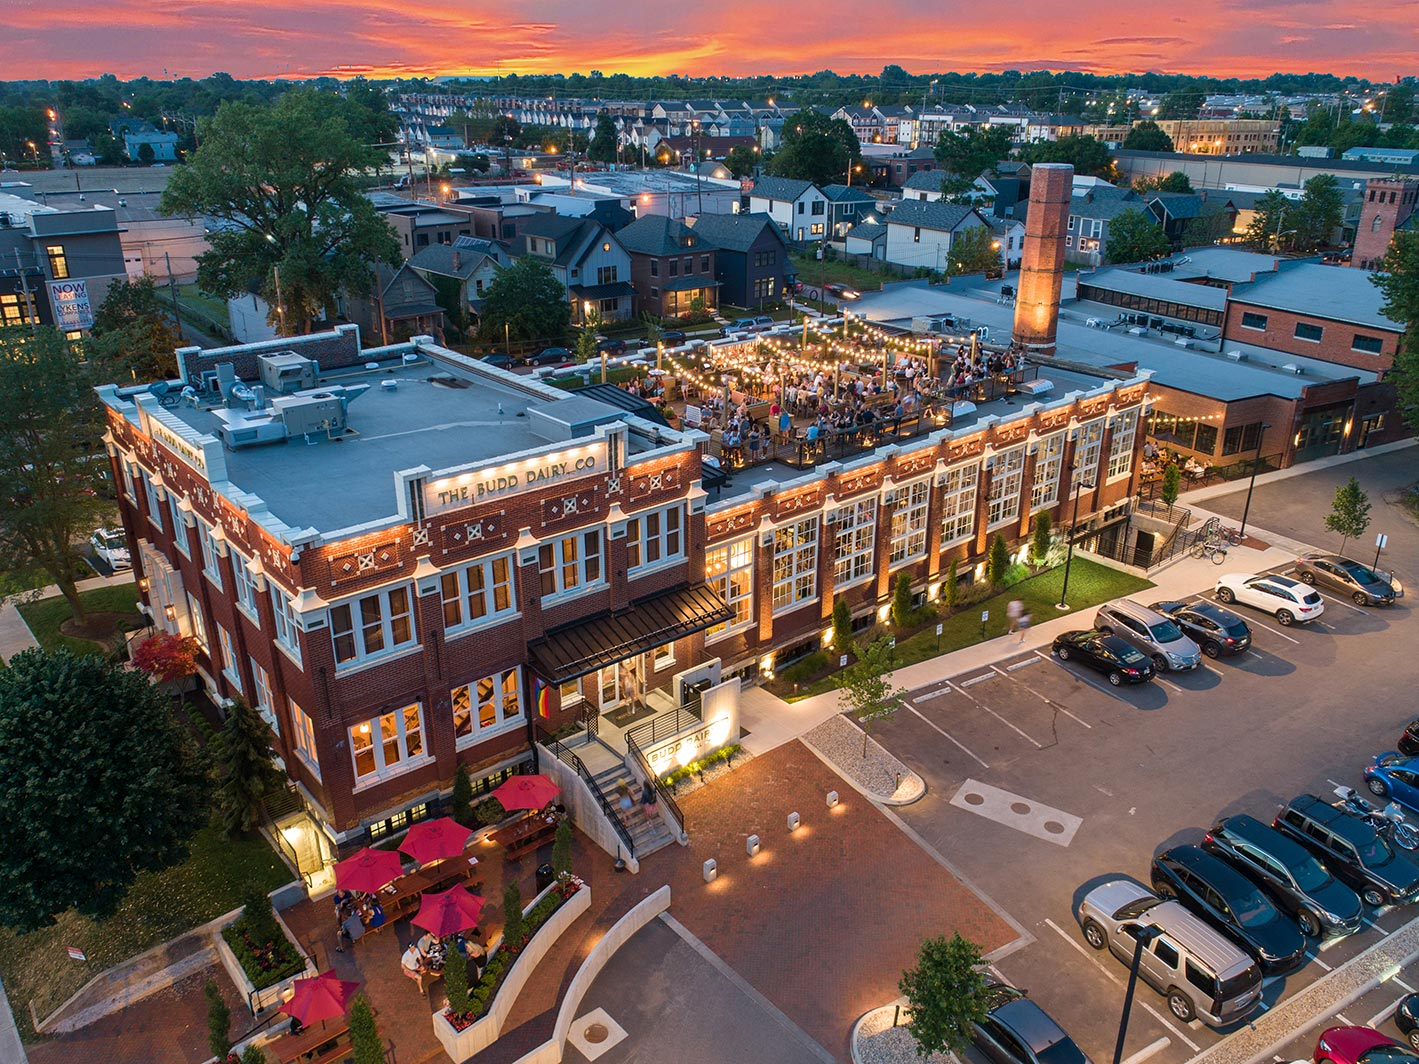 Aerial view of Budd Dairy Food Hall at sunset showing lighted exterior and people on rooftop.